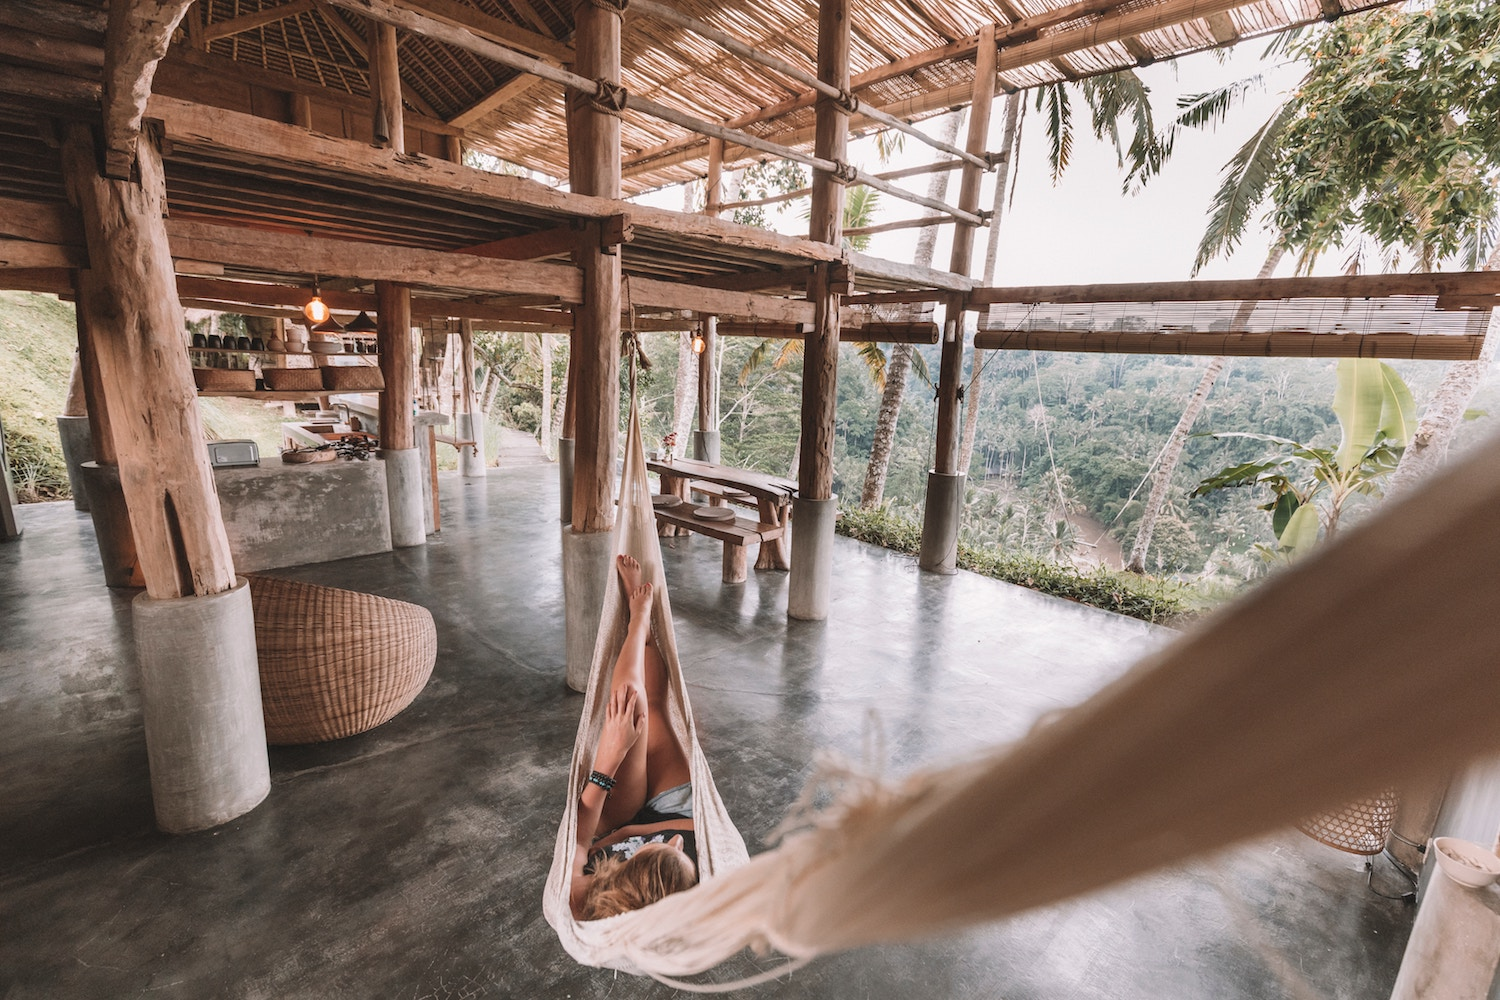 Everything you need to know about visiting Ubud in Bali in this one comprehensive guide! Read more to find out where to go, what to do, where to stay and where to eat!